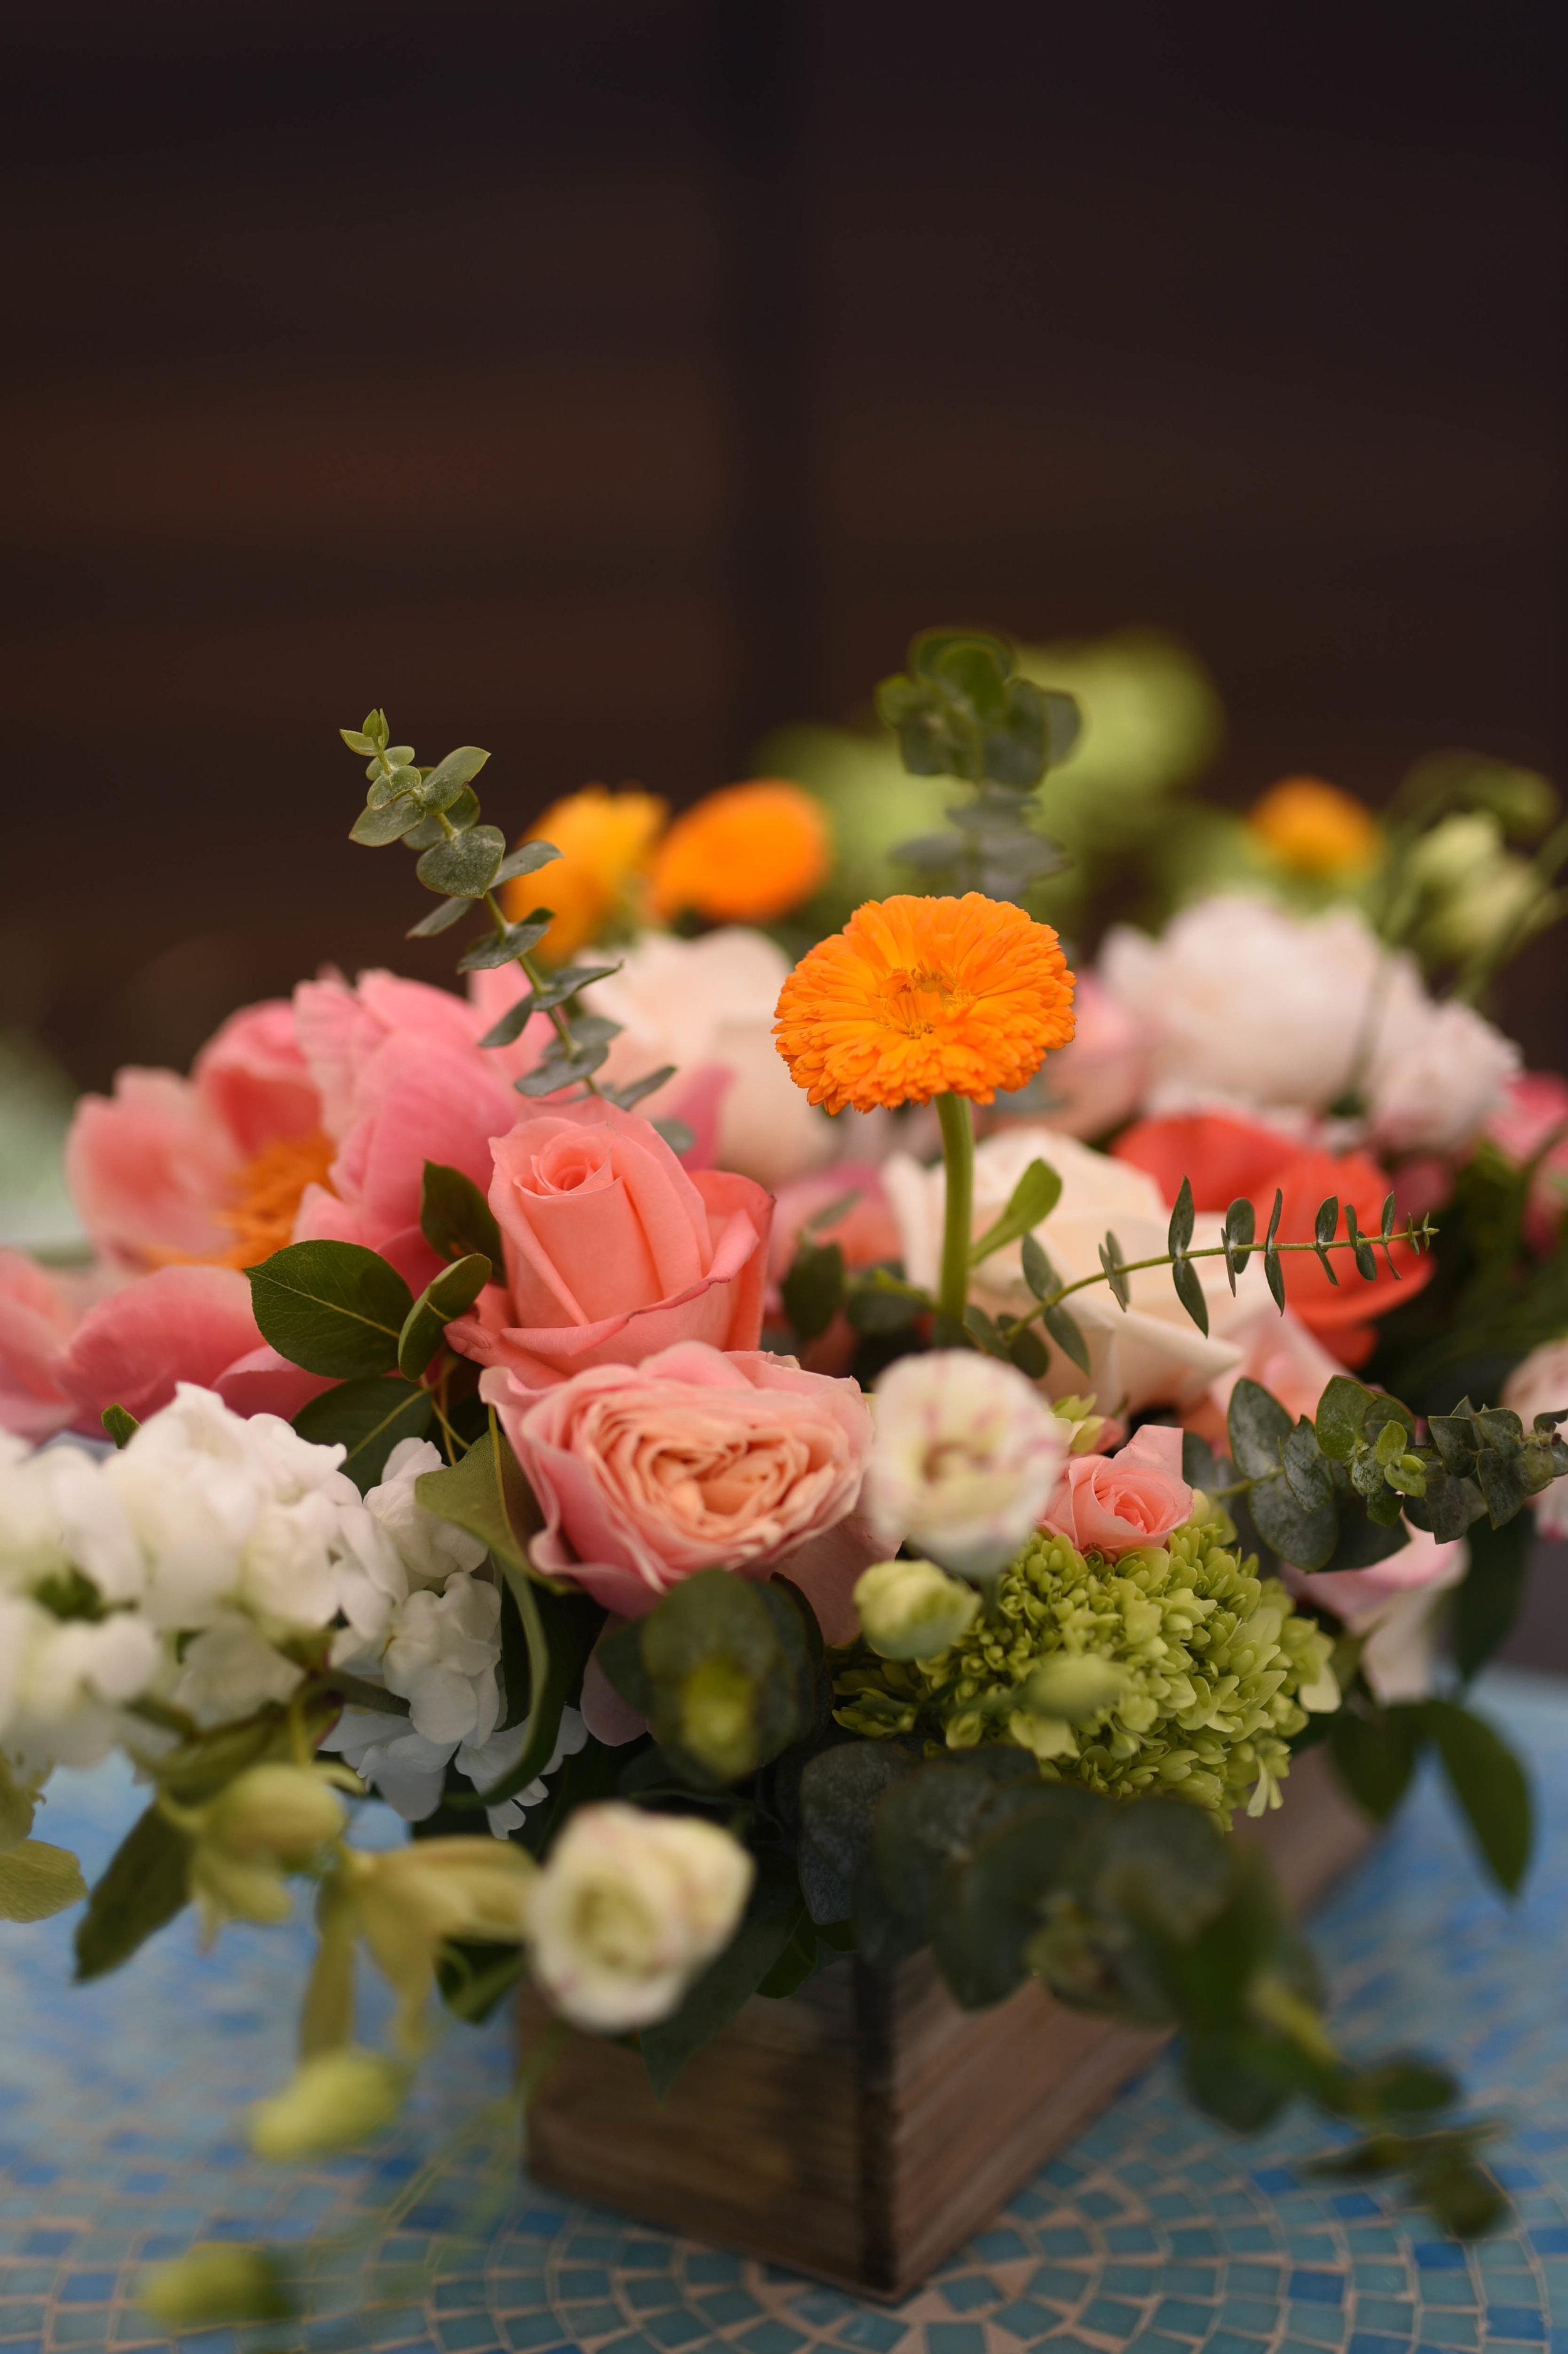 A variety of flowers and colors creates fun texture and a natural vibe for this Brooklyn wedding centerpiece